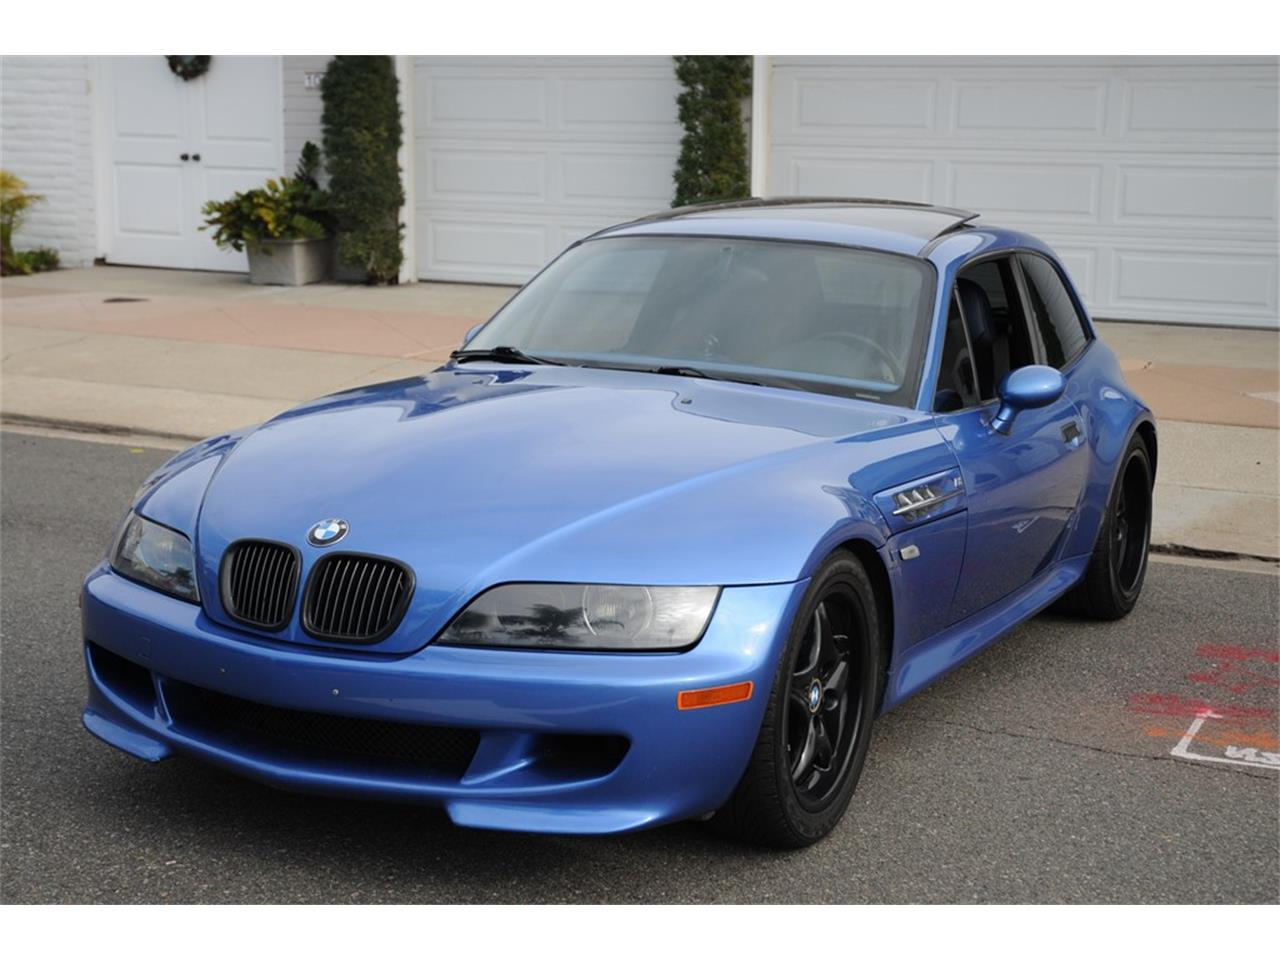 Large Picture of '00 M Coupe located in Costa Mesa California - $17,990.00 - P65V